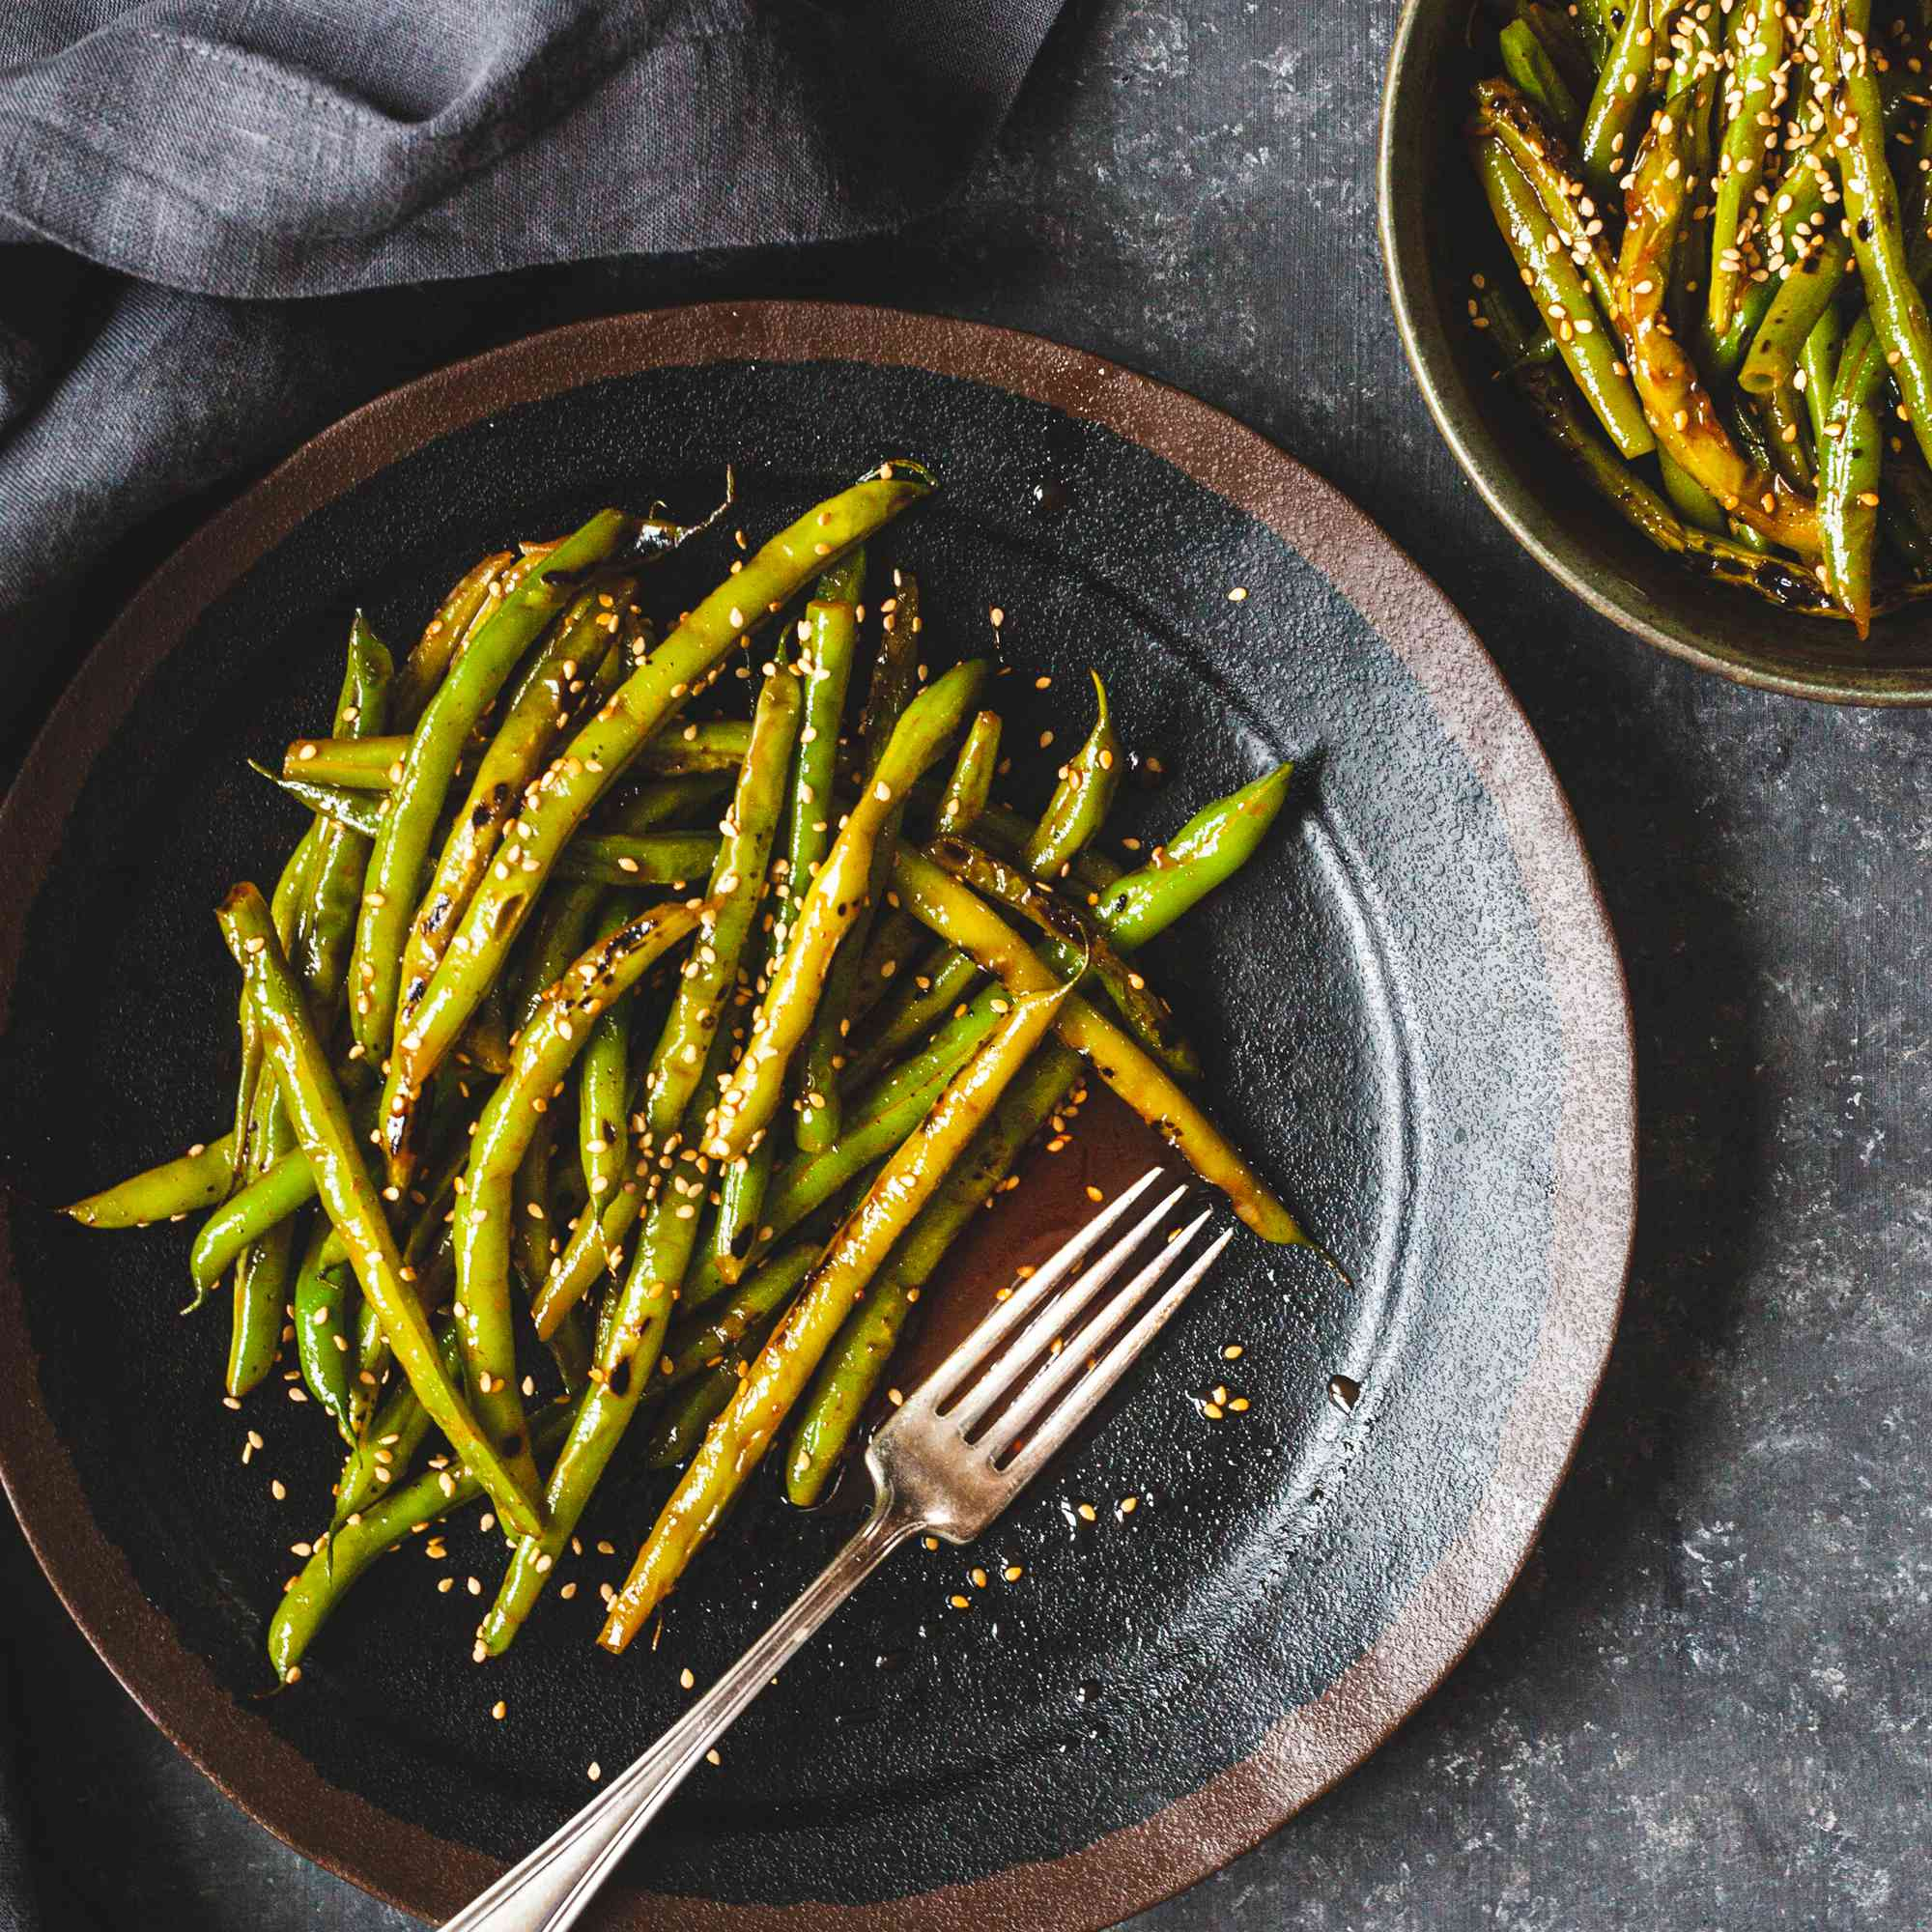 Spicy Blistered Green Beans with Gochujang served on two plates.